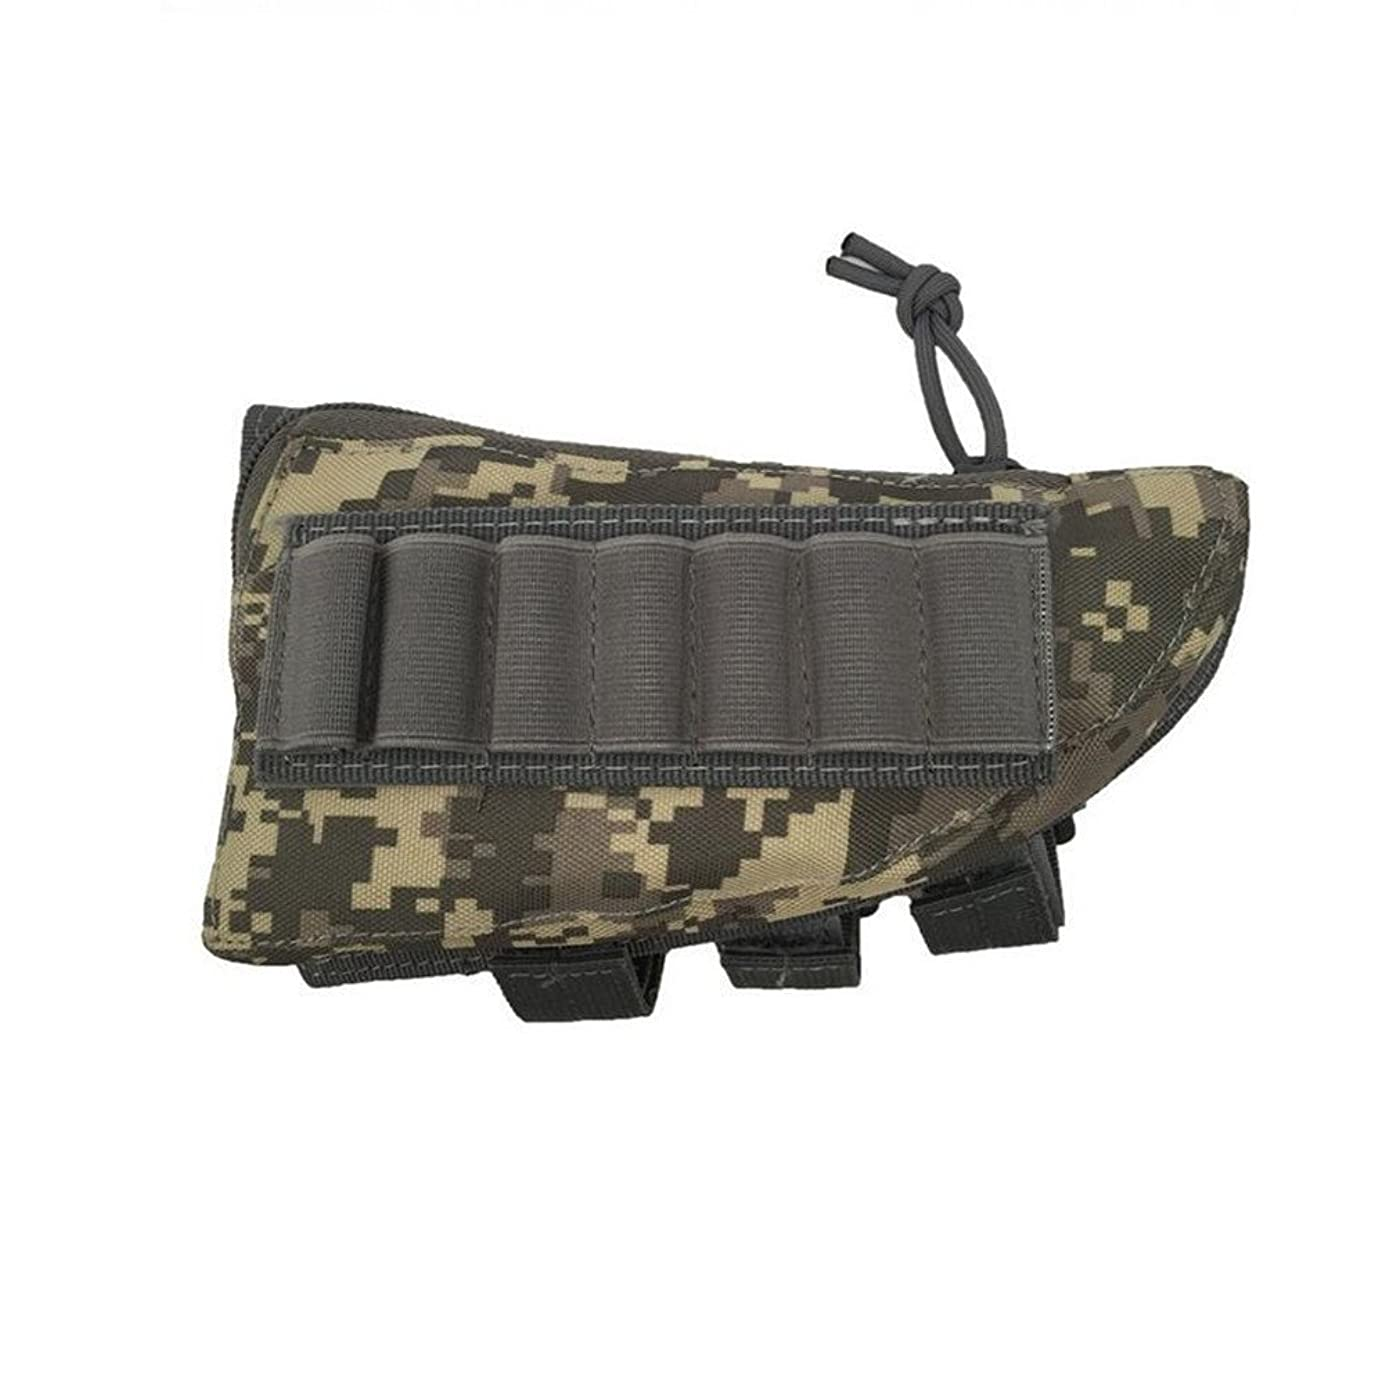 VALINK Tactical Buttstock Shotgun Rifle Stock Ammo Portable Pouch Shell Cartridge Holder Pouch Holder Cheek Rest Gun Bag for Outdoor Military Hunting - 20cmX11.5cmX5cm